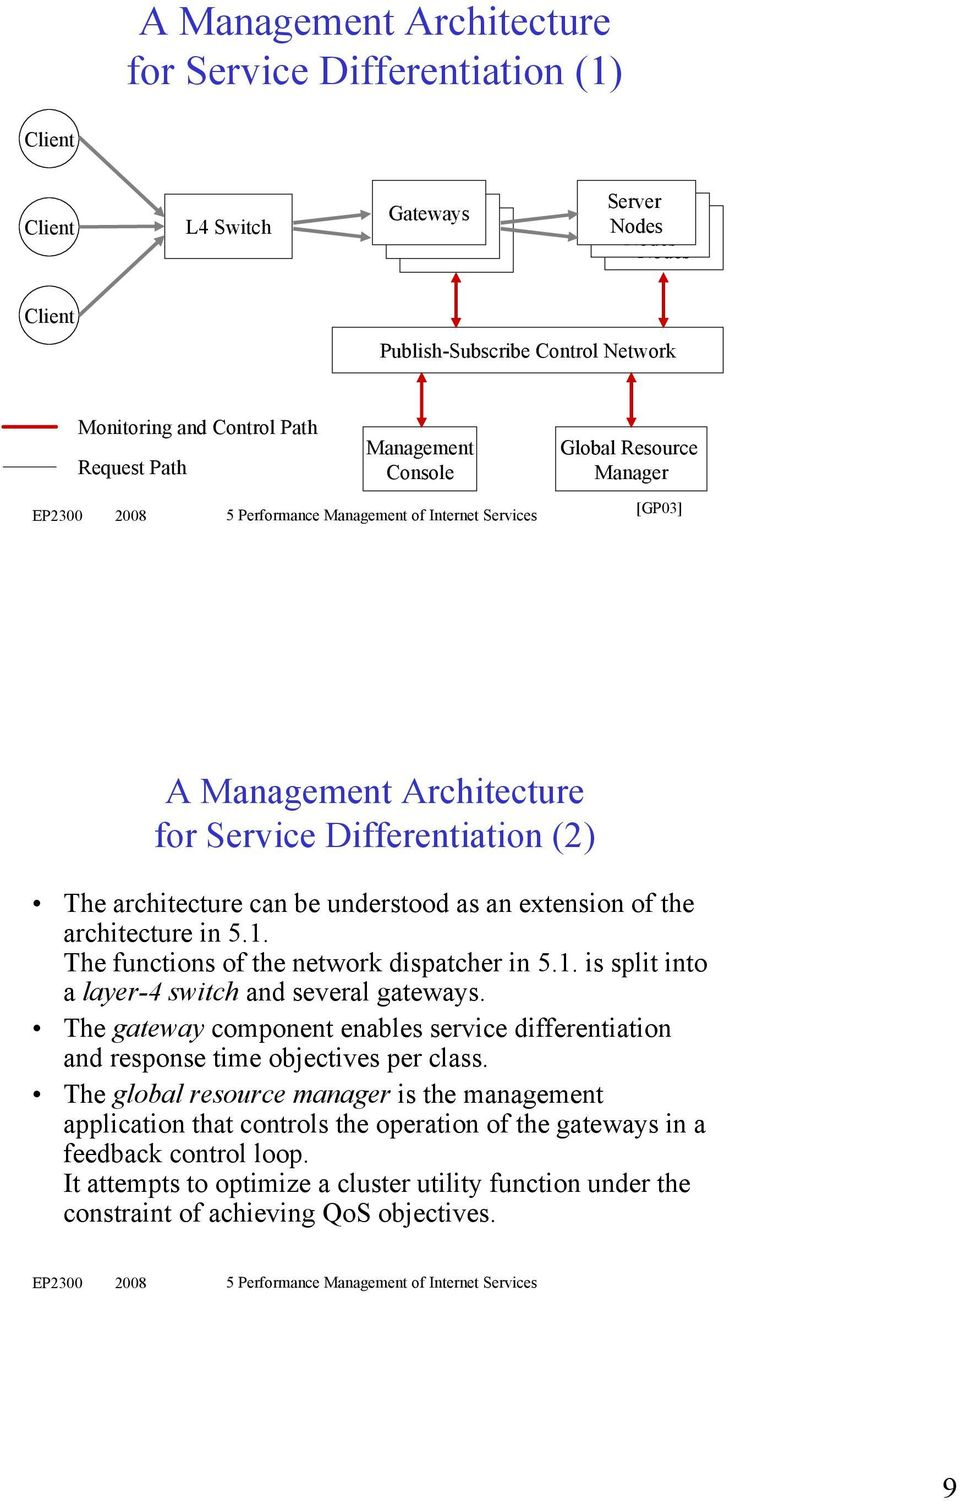 architecture in 5.1. The functions of the network dispatcher in 5.1. is split into a layer-4 switch and several gateways.